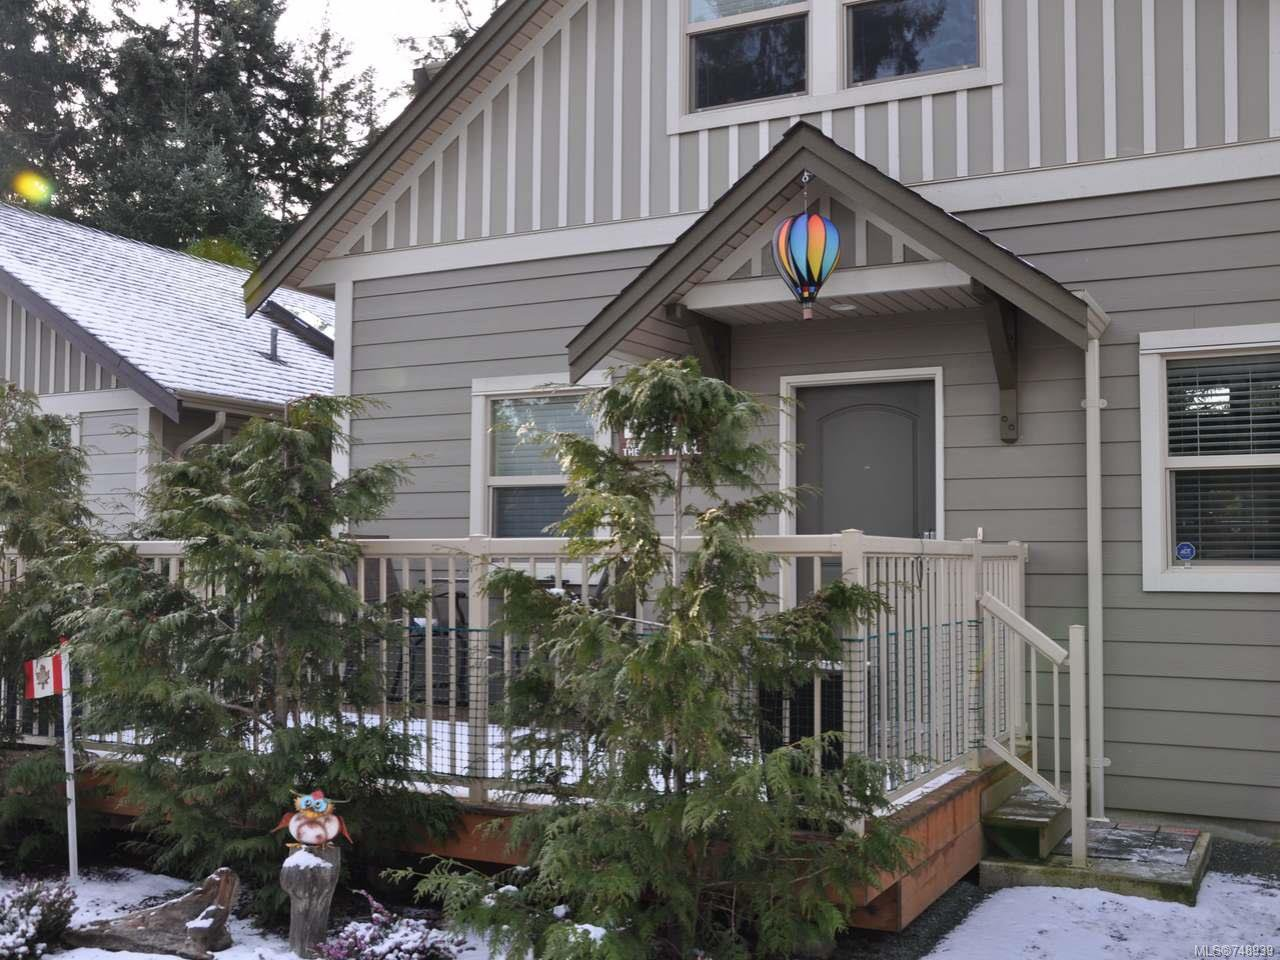 Main Photo: 235 1130 RESORT DRIVE in PARKSVILLE: PQ Parksville Row/Townhouse for sale (Parksville/Qualicum)  : MLS®# 748939